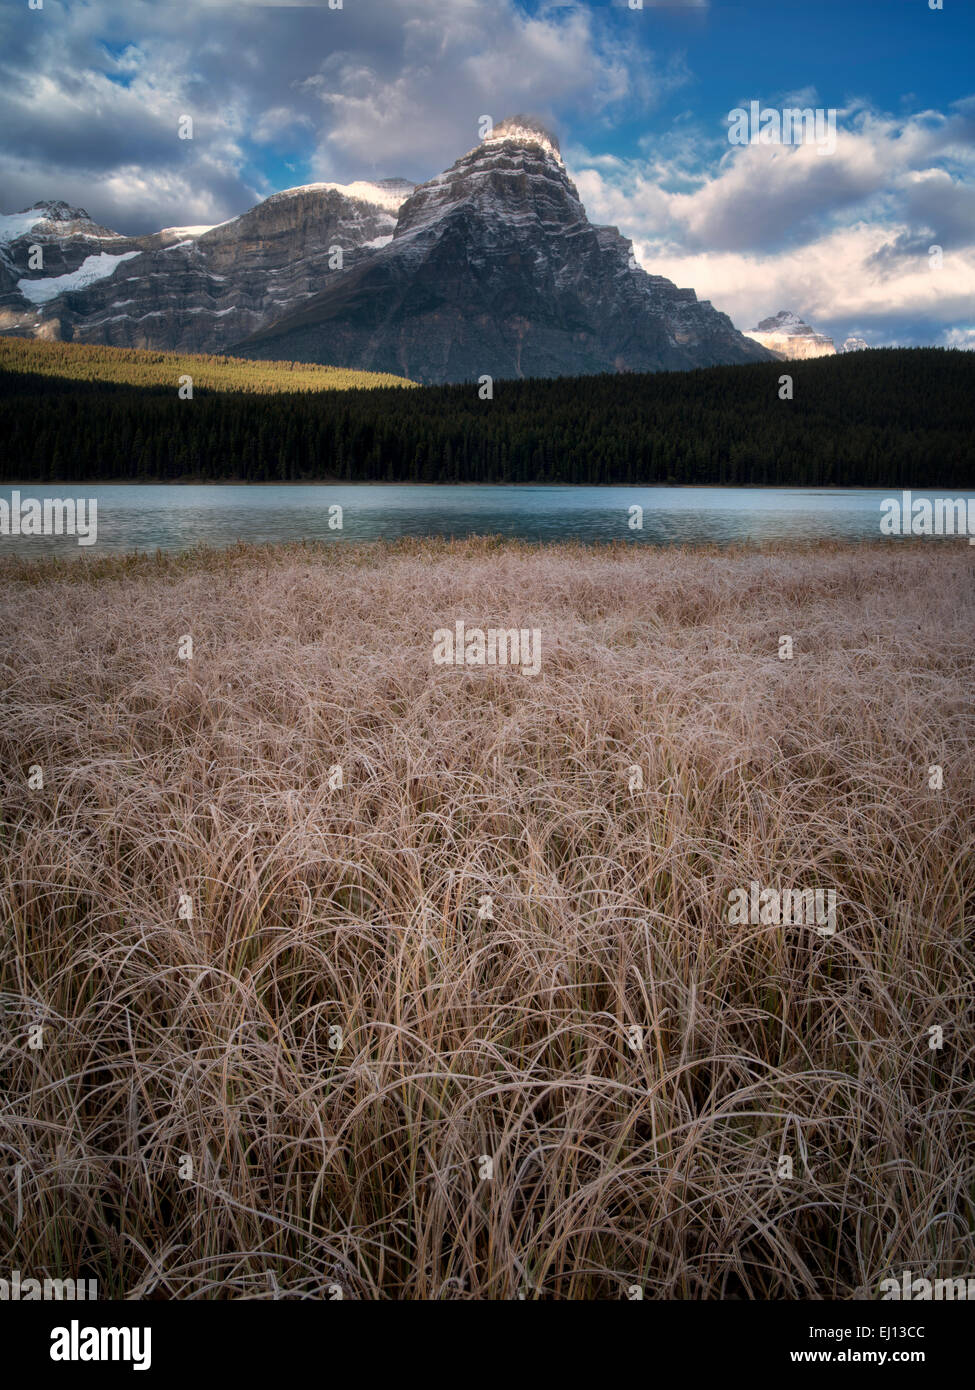 Waterfowl Lakes with frosty grasses and mountains. Banff National Park, Alberta Canada. - Stock Image